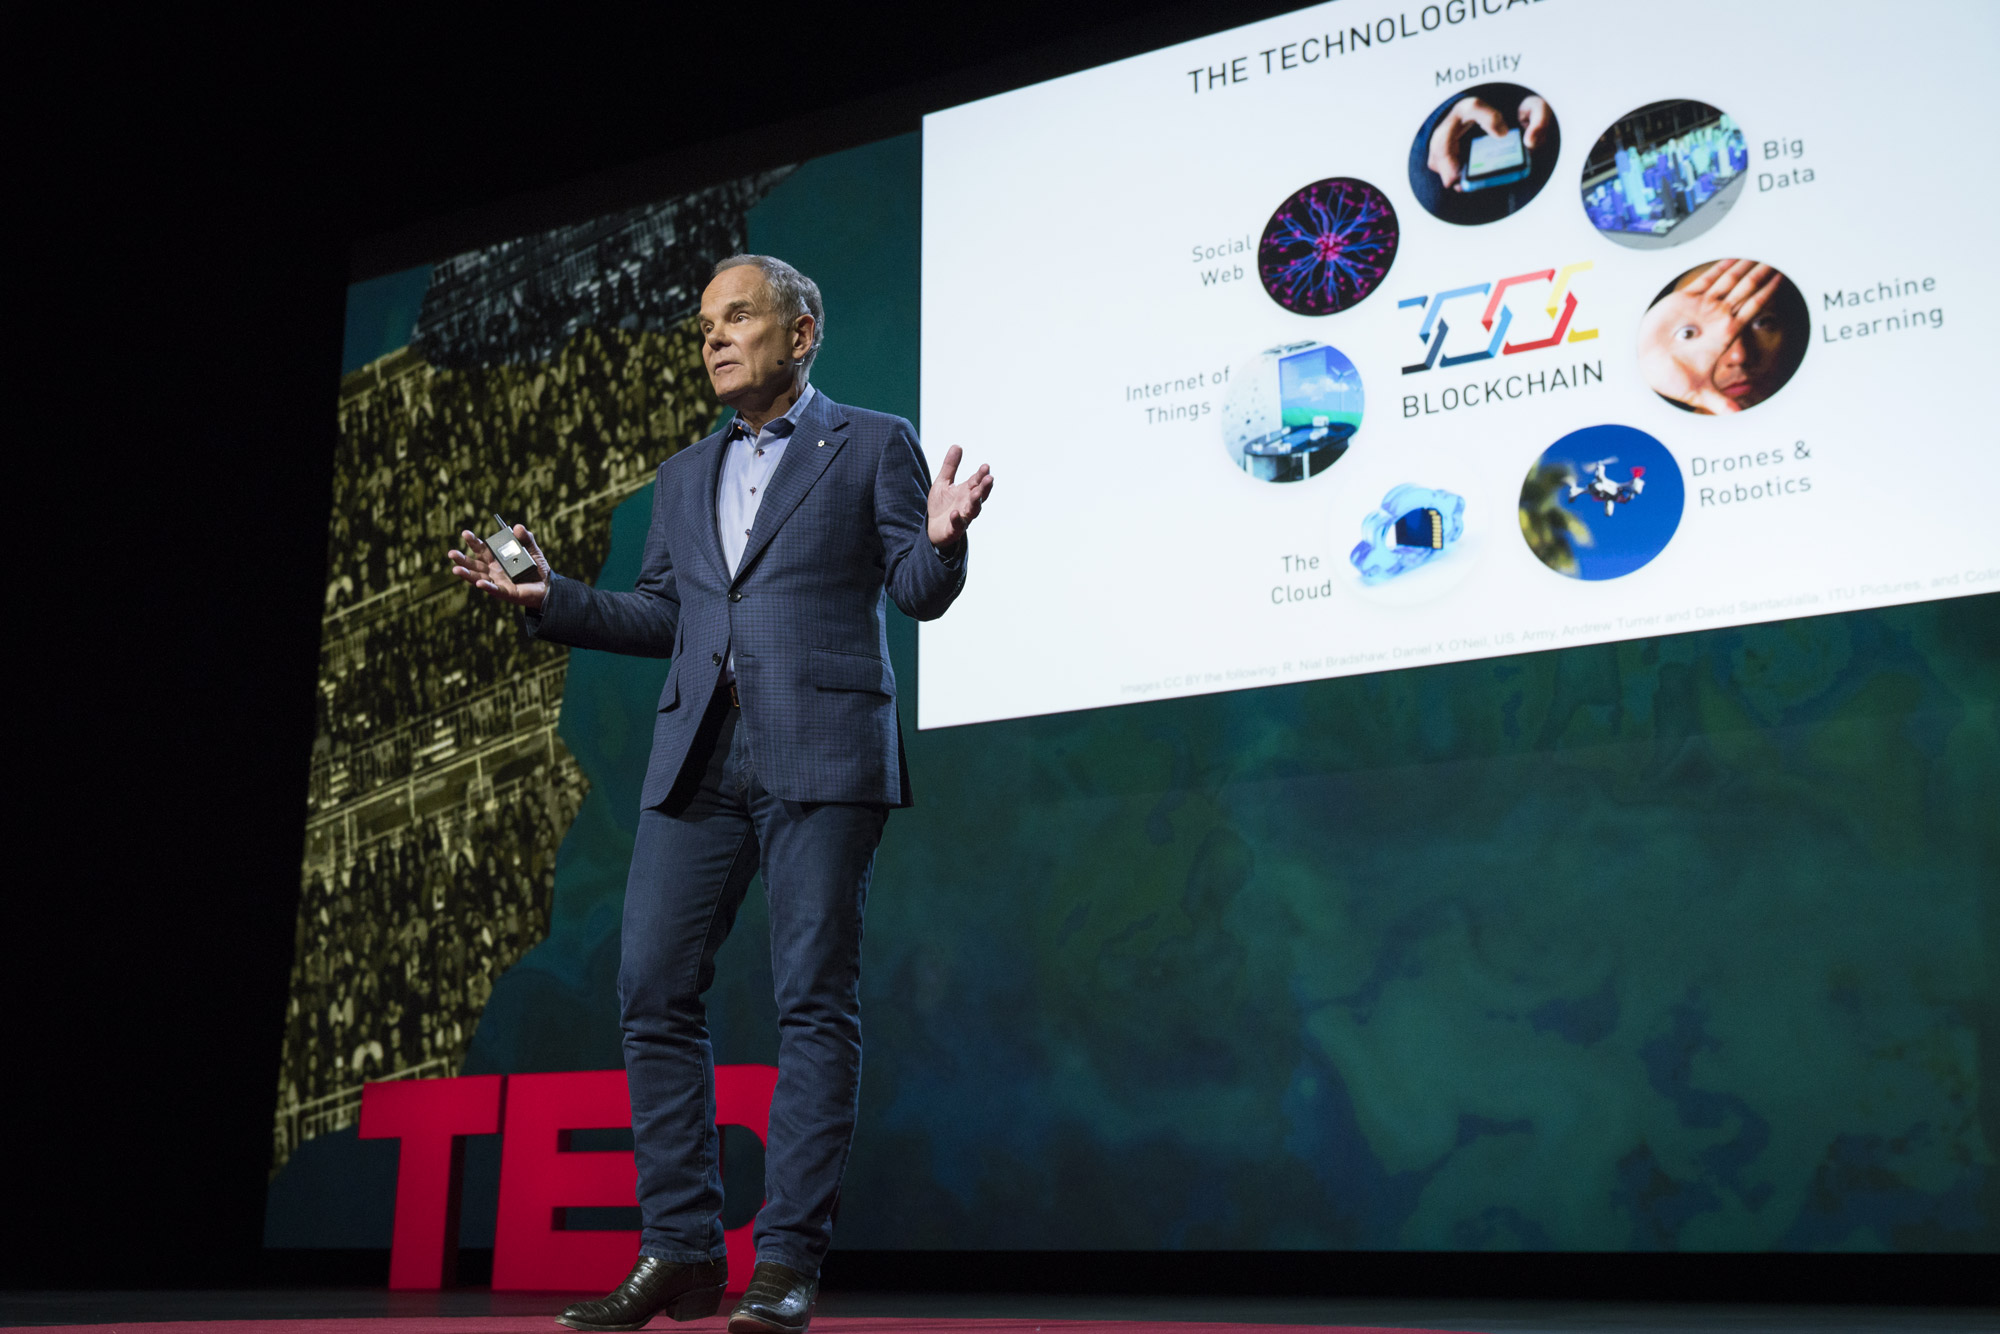 Don Tapscott imagines a future of relationships powered by blockchain. Photo: Bret Hartman